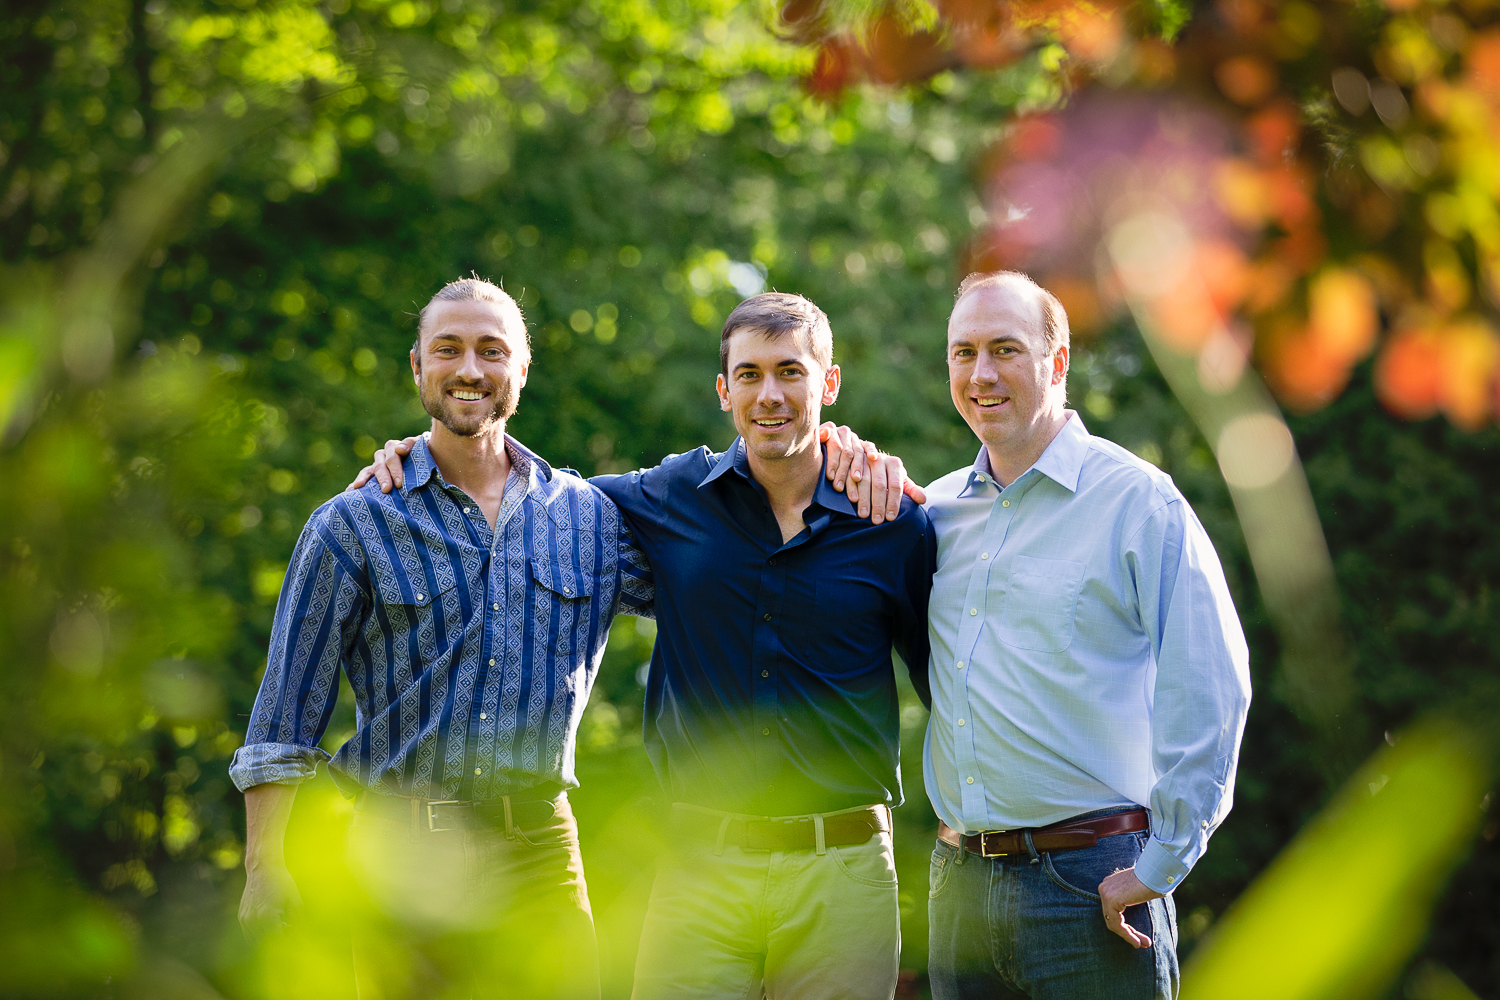 Outdoor portrait of three grown brothers